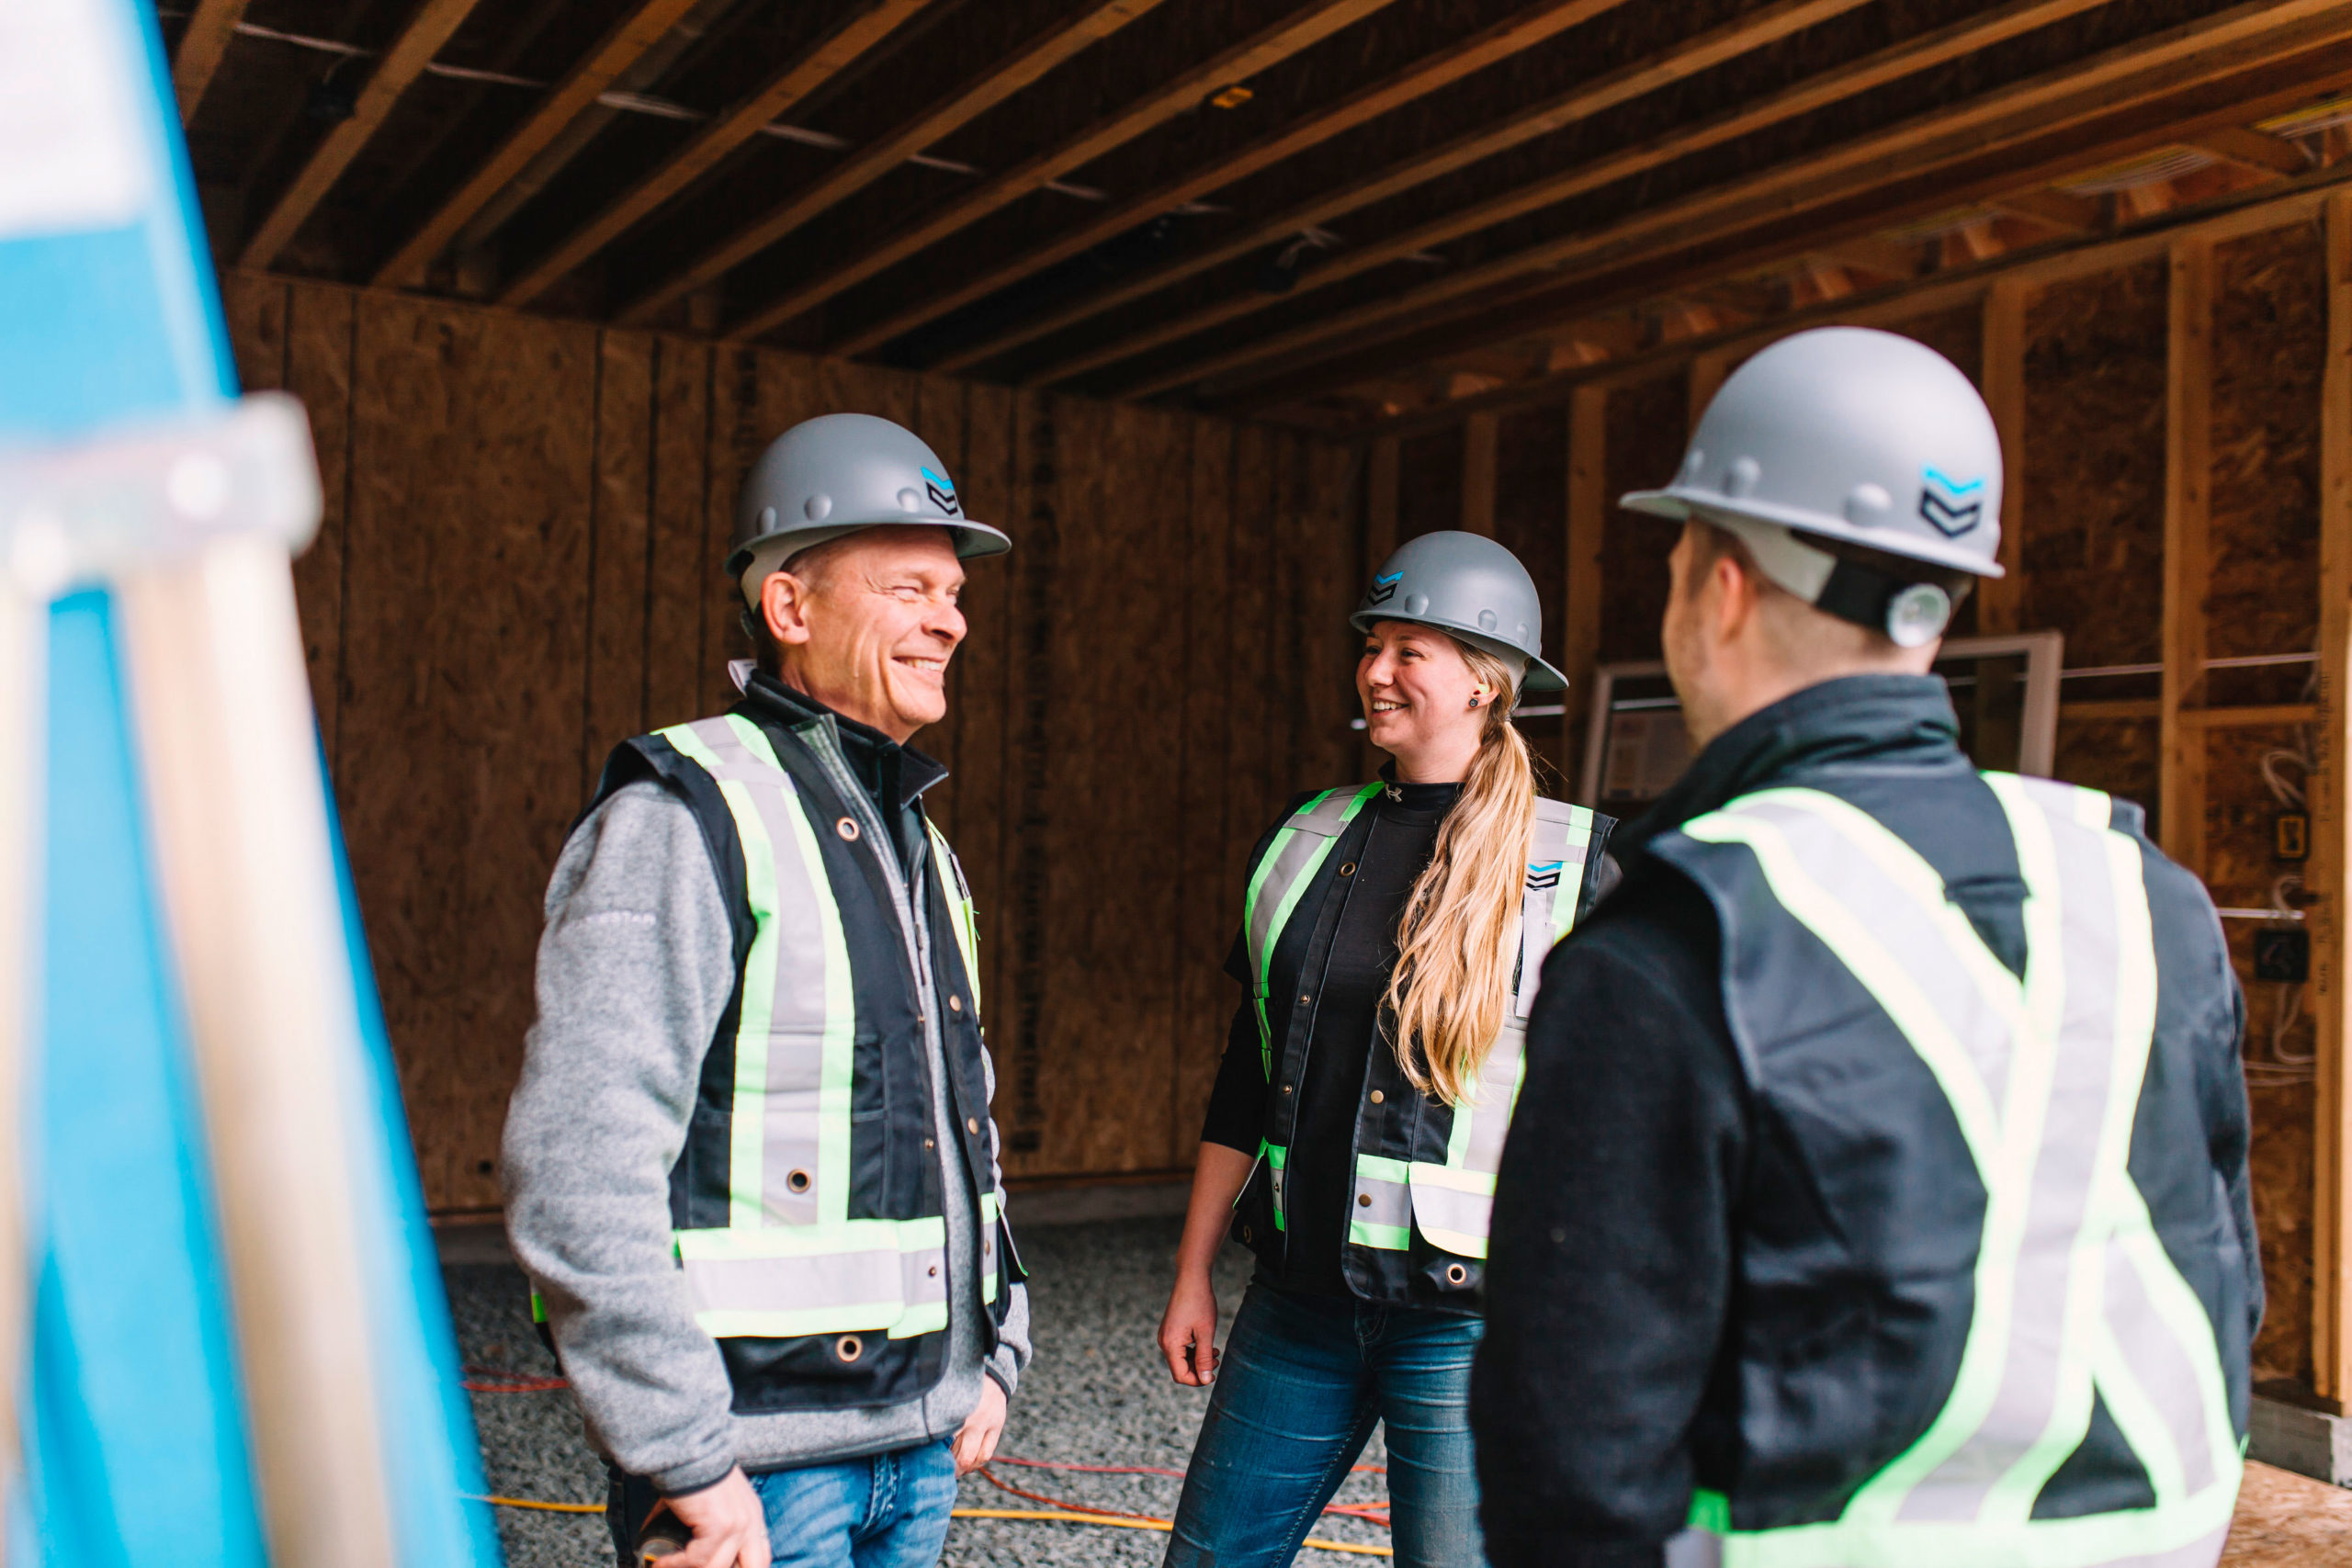 Team discussing a plan on a construction site